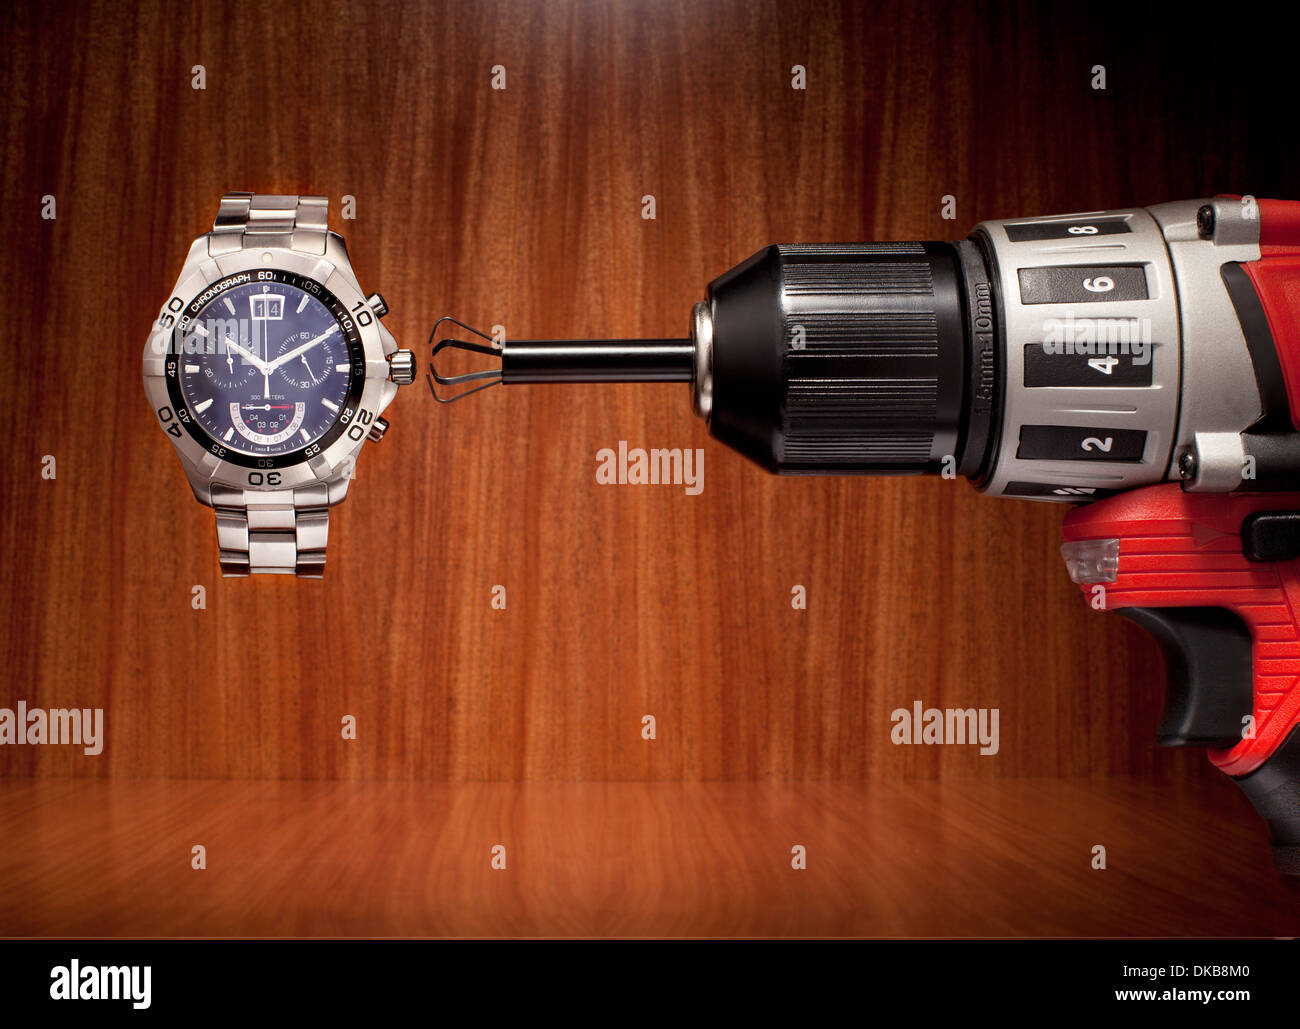 Using drill to change time on watch - Stock Image